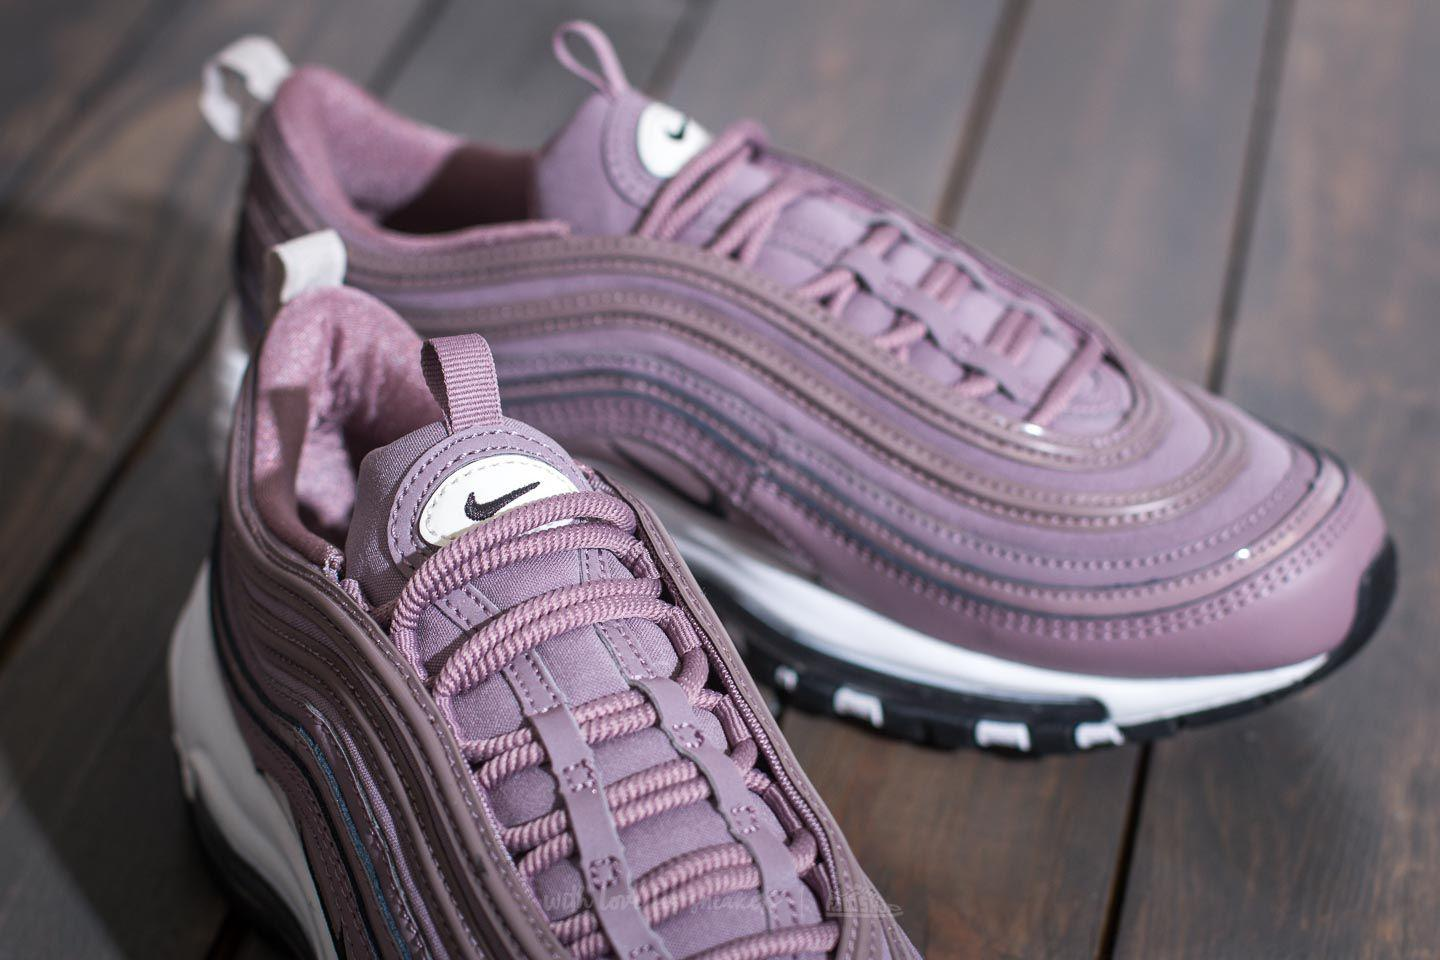 Nike Air Max 97 Taupe GreyBlack Light Bone For Sale